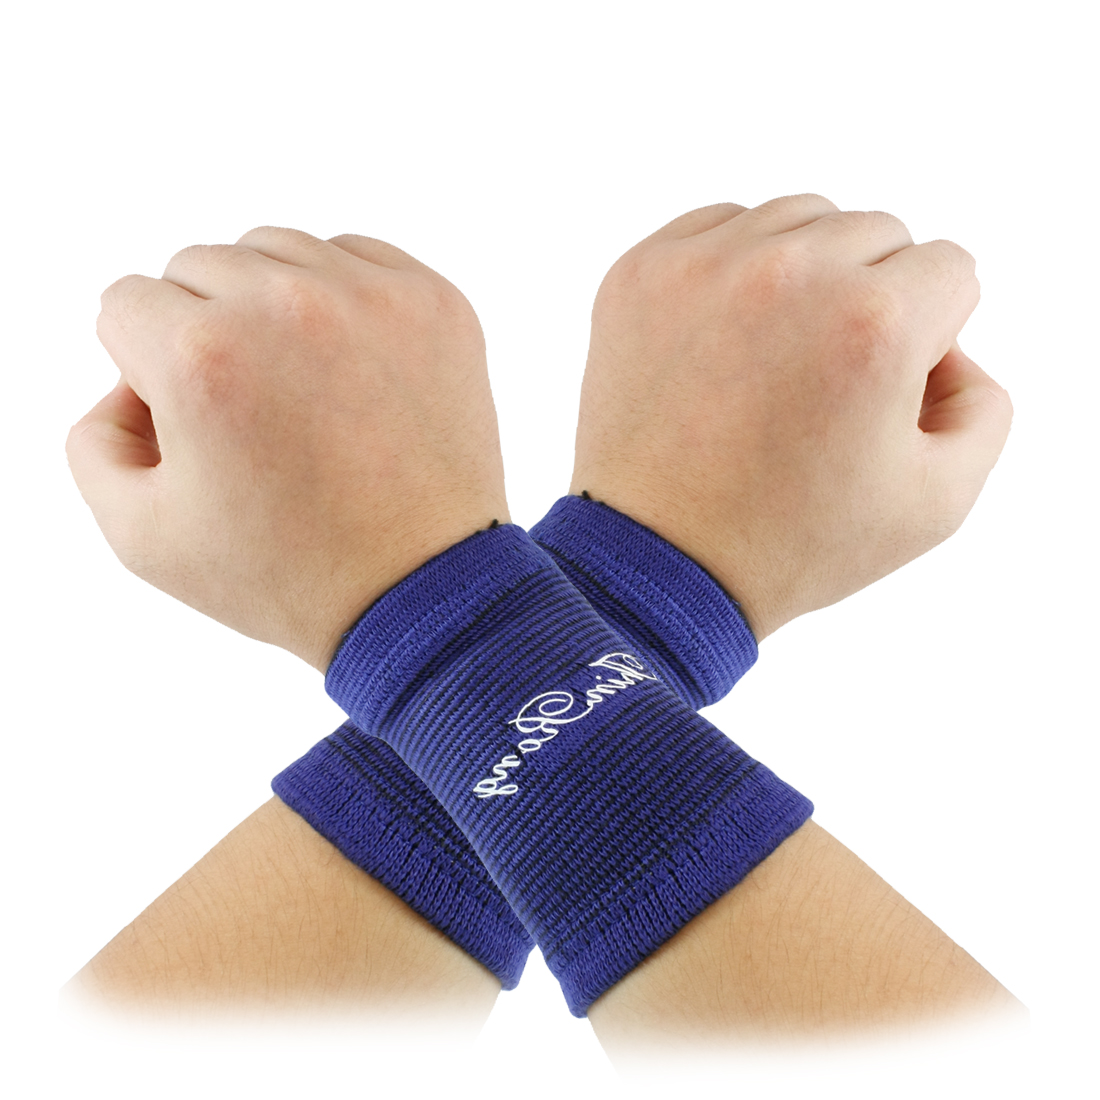 Pair Sports Protector Texturing Soft Elastic Wrist Brace Support Light Orange